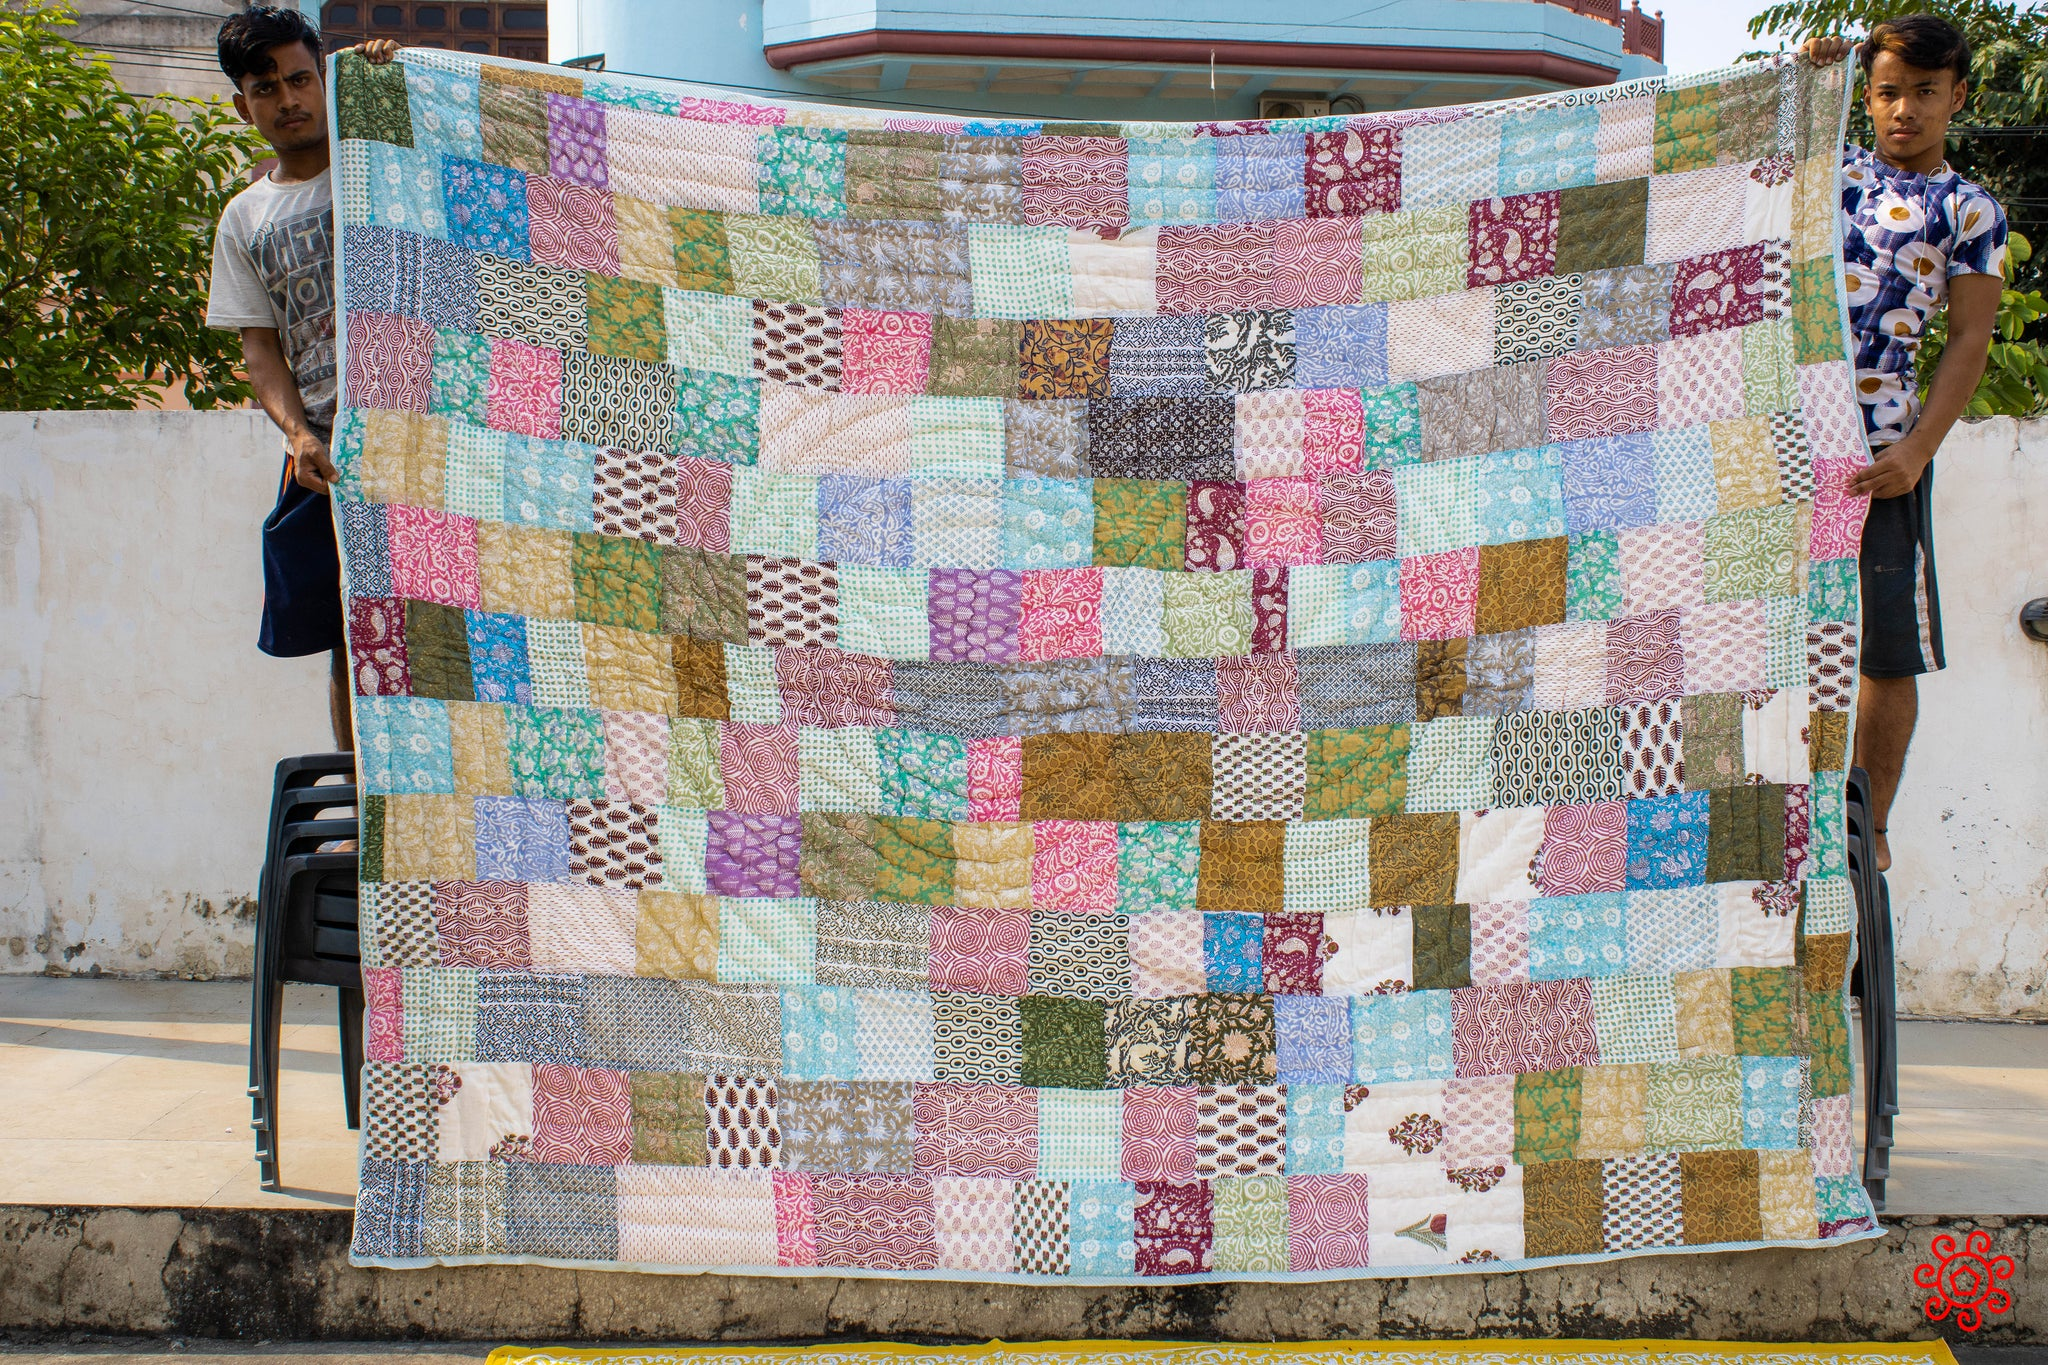 All New Roysha 2020 Quilt Collection - 100% Handmade Queen Patchwork Quilt QPW-215